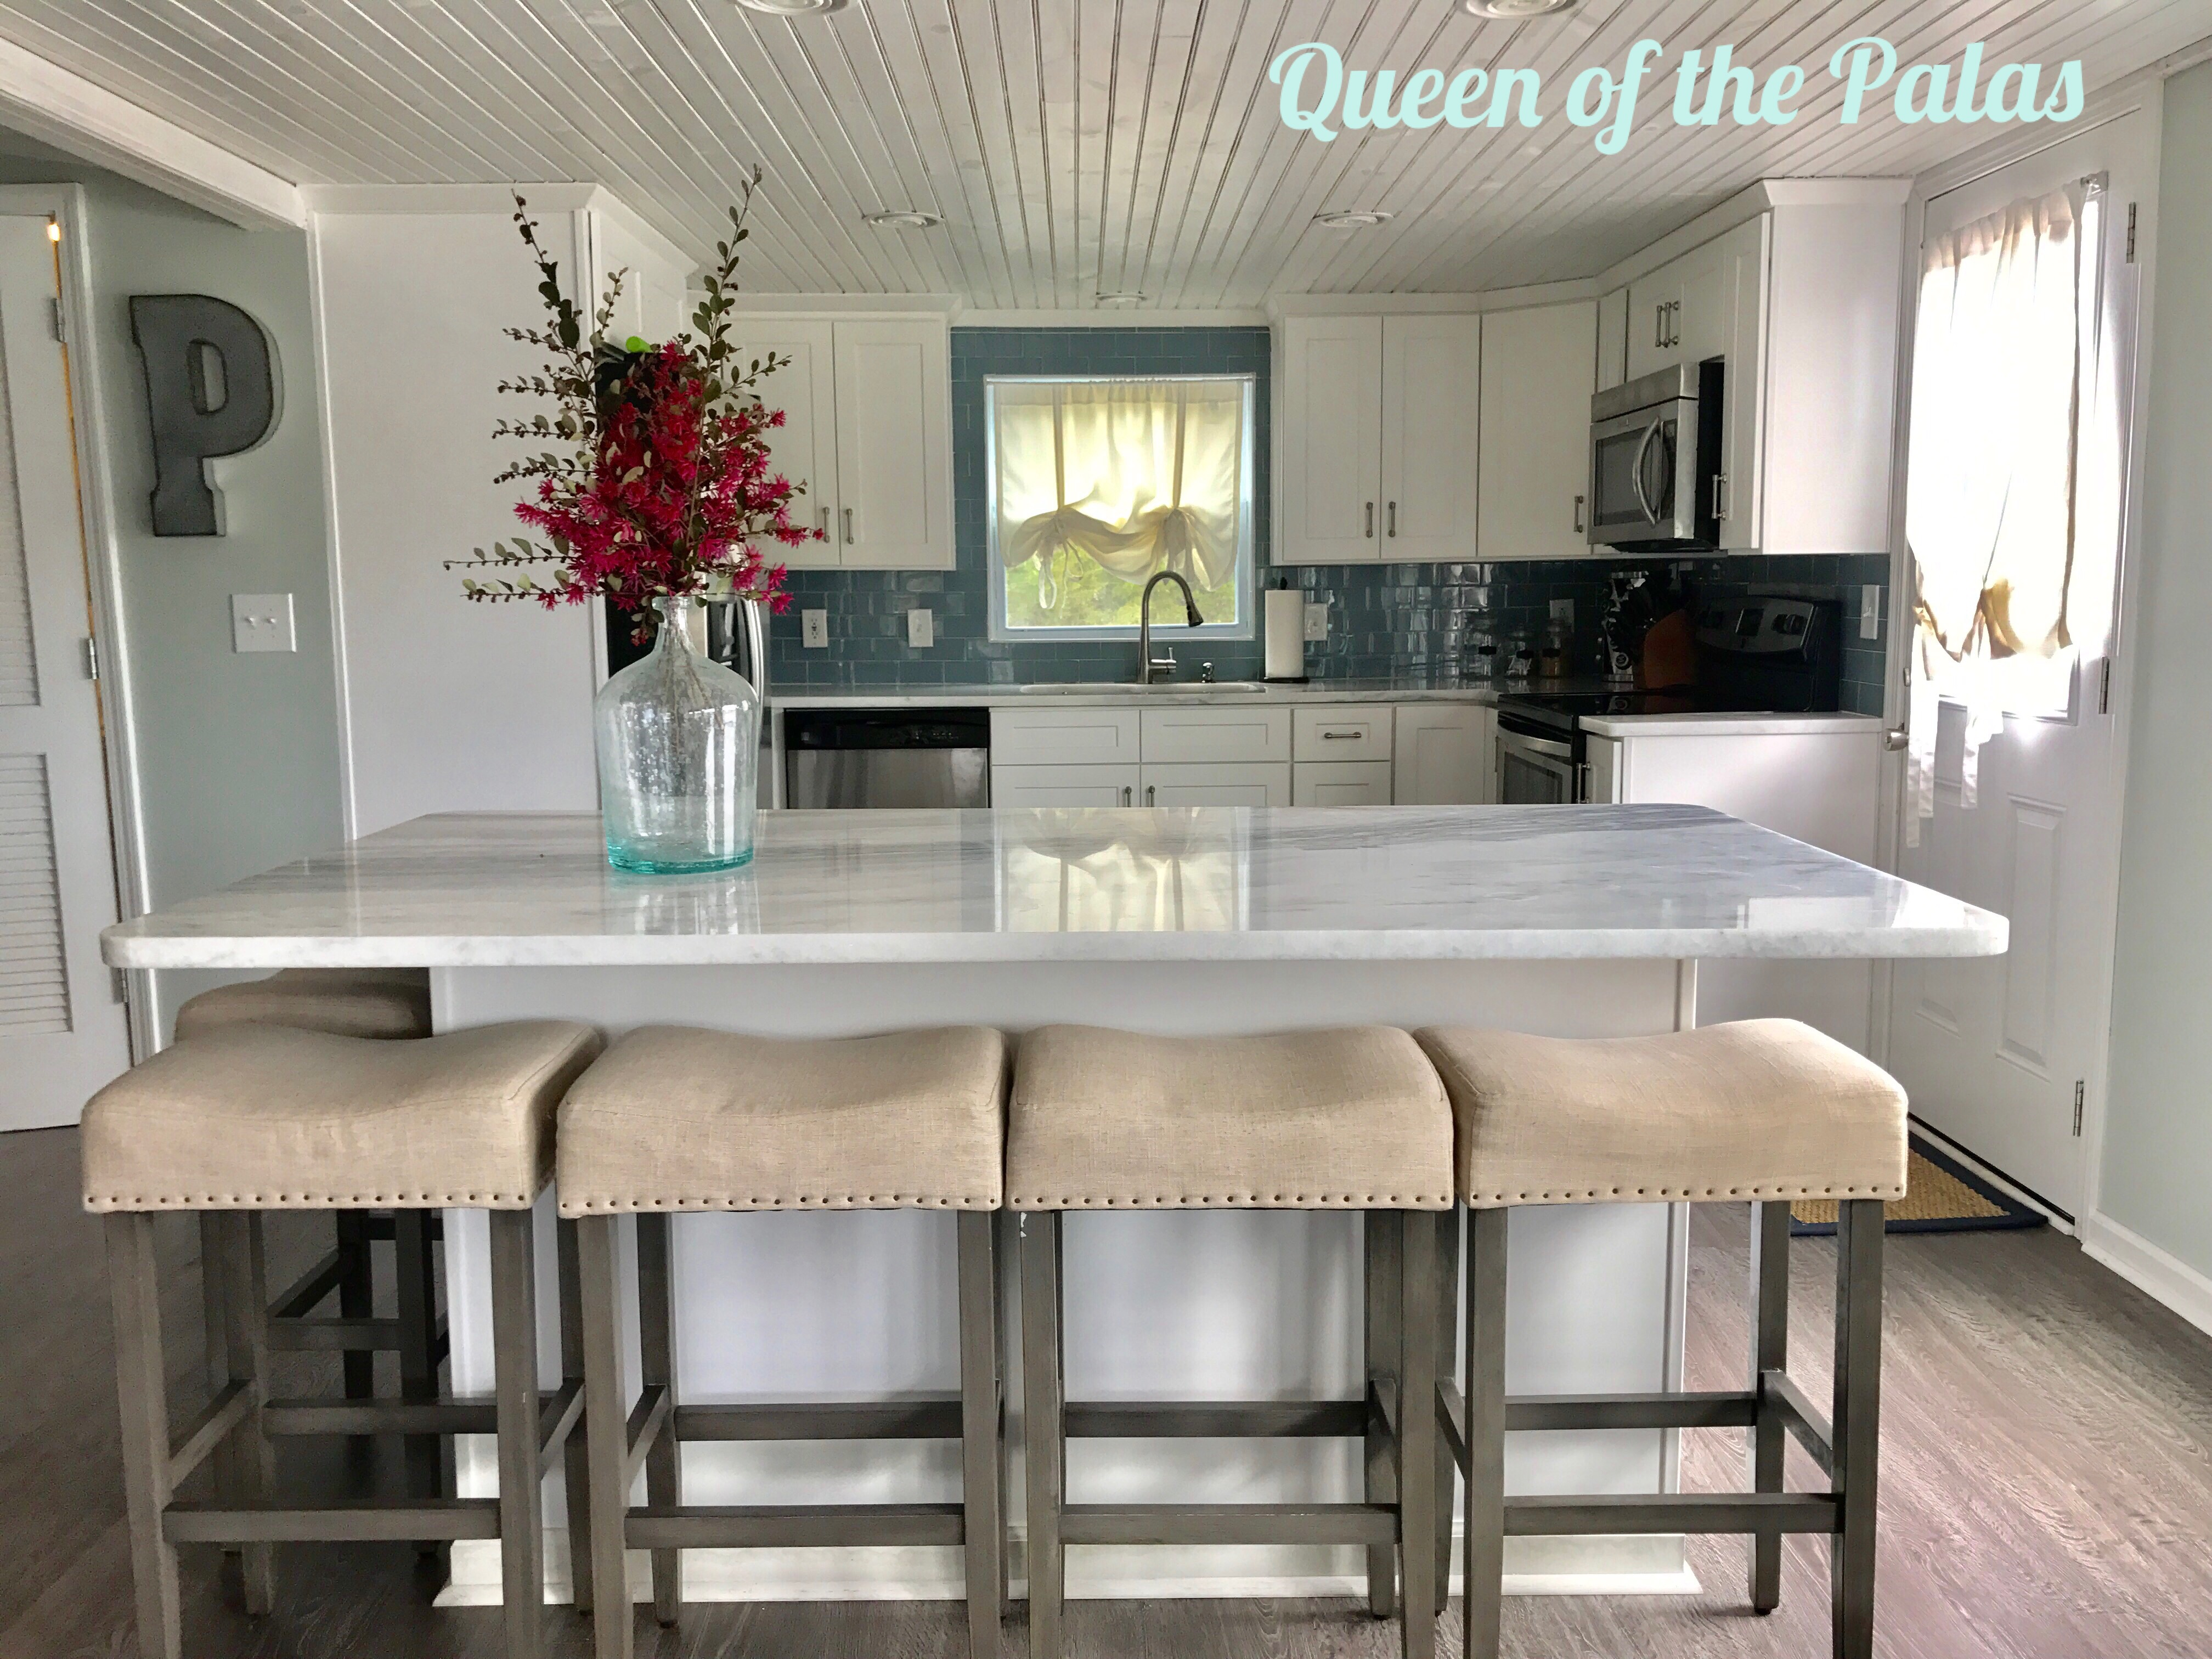 Charmant In Addition To Using The Work Triangle To Help Design A Functioning Space,  Some Basic Concepts Of How A Kitchen Is Used Can Be Helpful In Defining The  ...